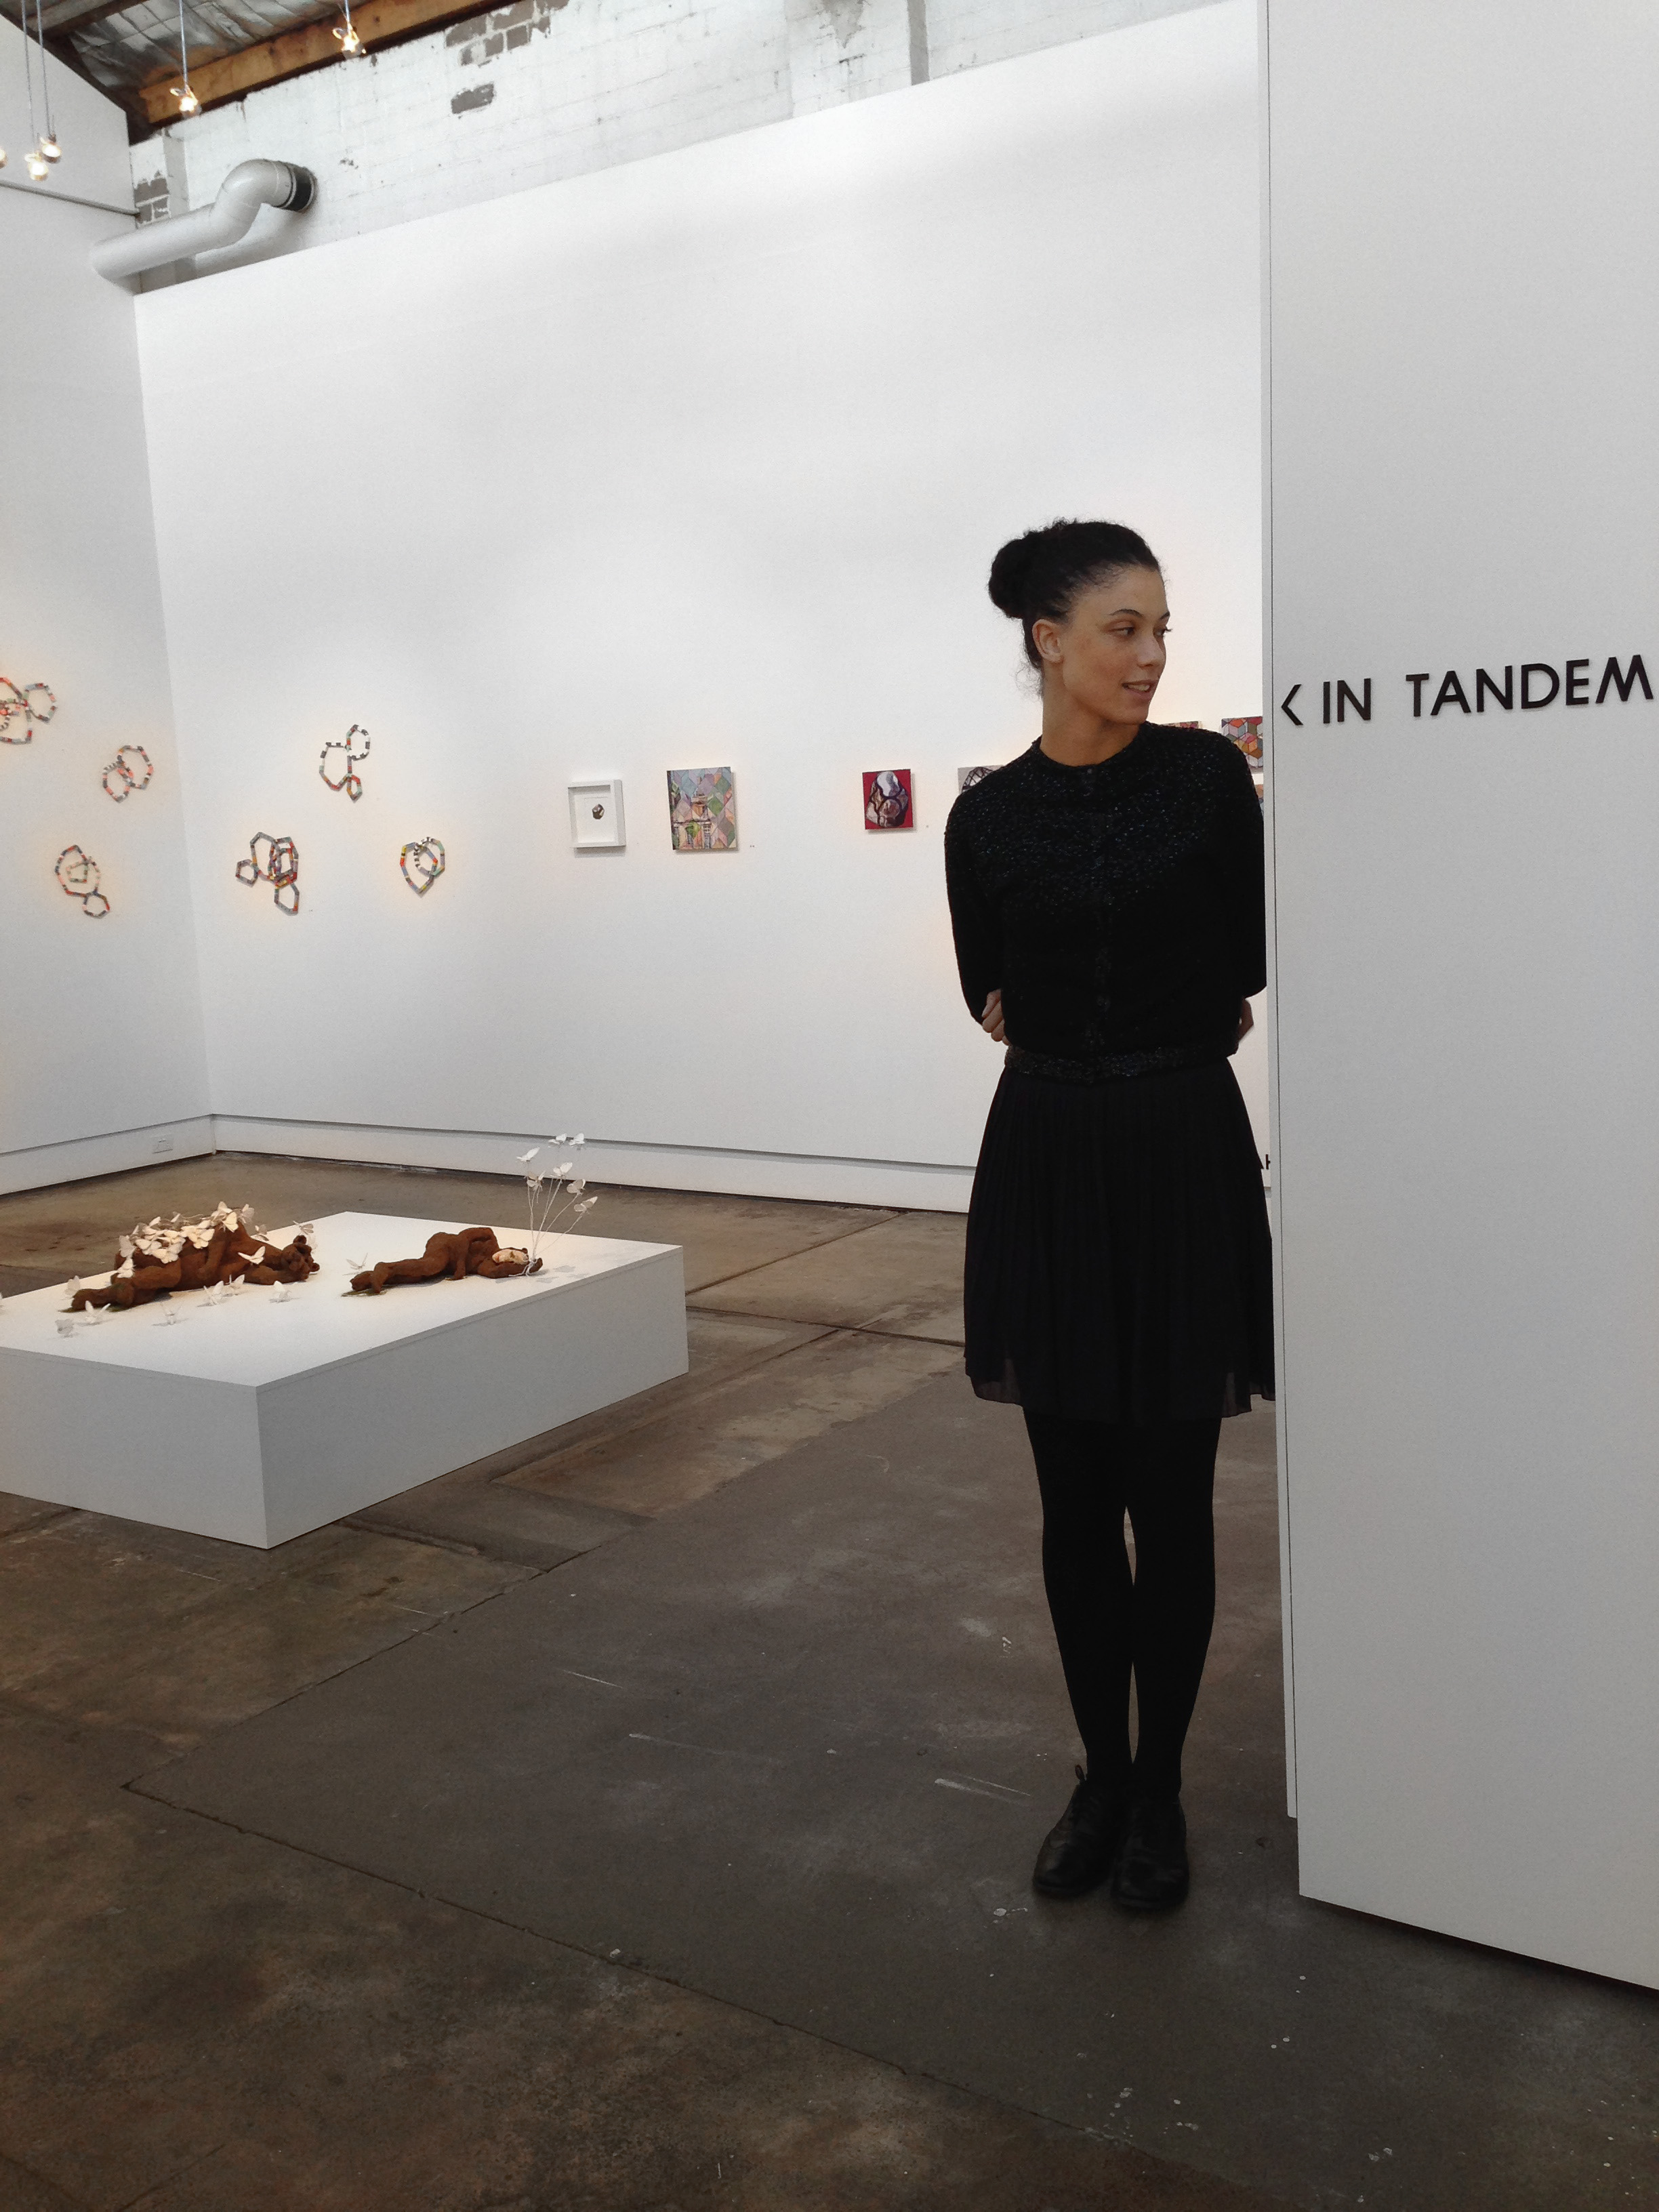 'In Tandem' 2014, installation view, Brenda May Gallery, Sydney. Curated by Olivia Welch.Image courtesy of the Artists and MAY SPACE, Sydney.